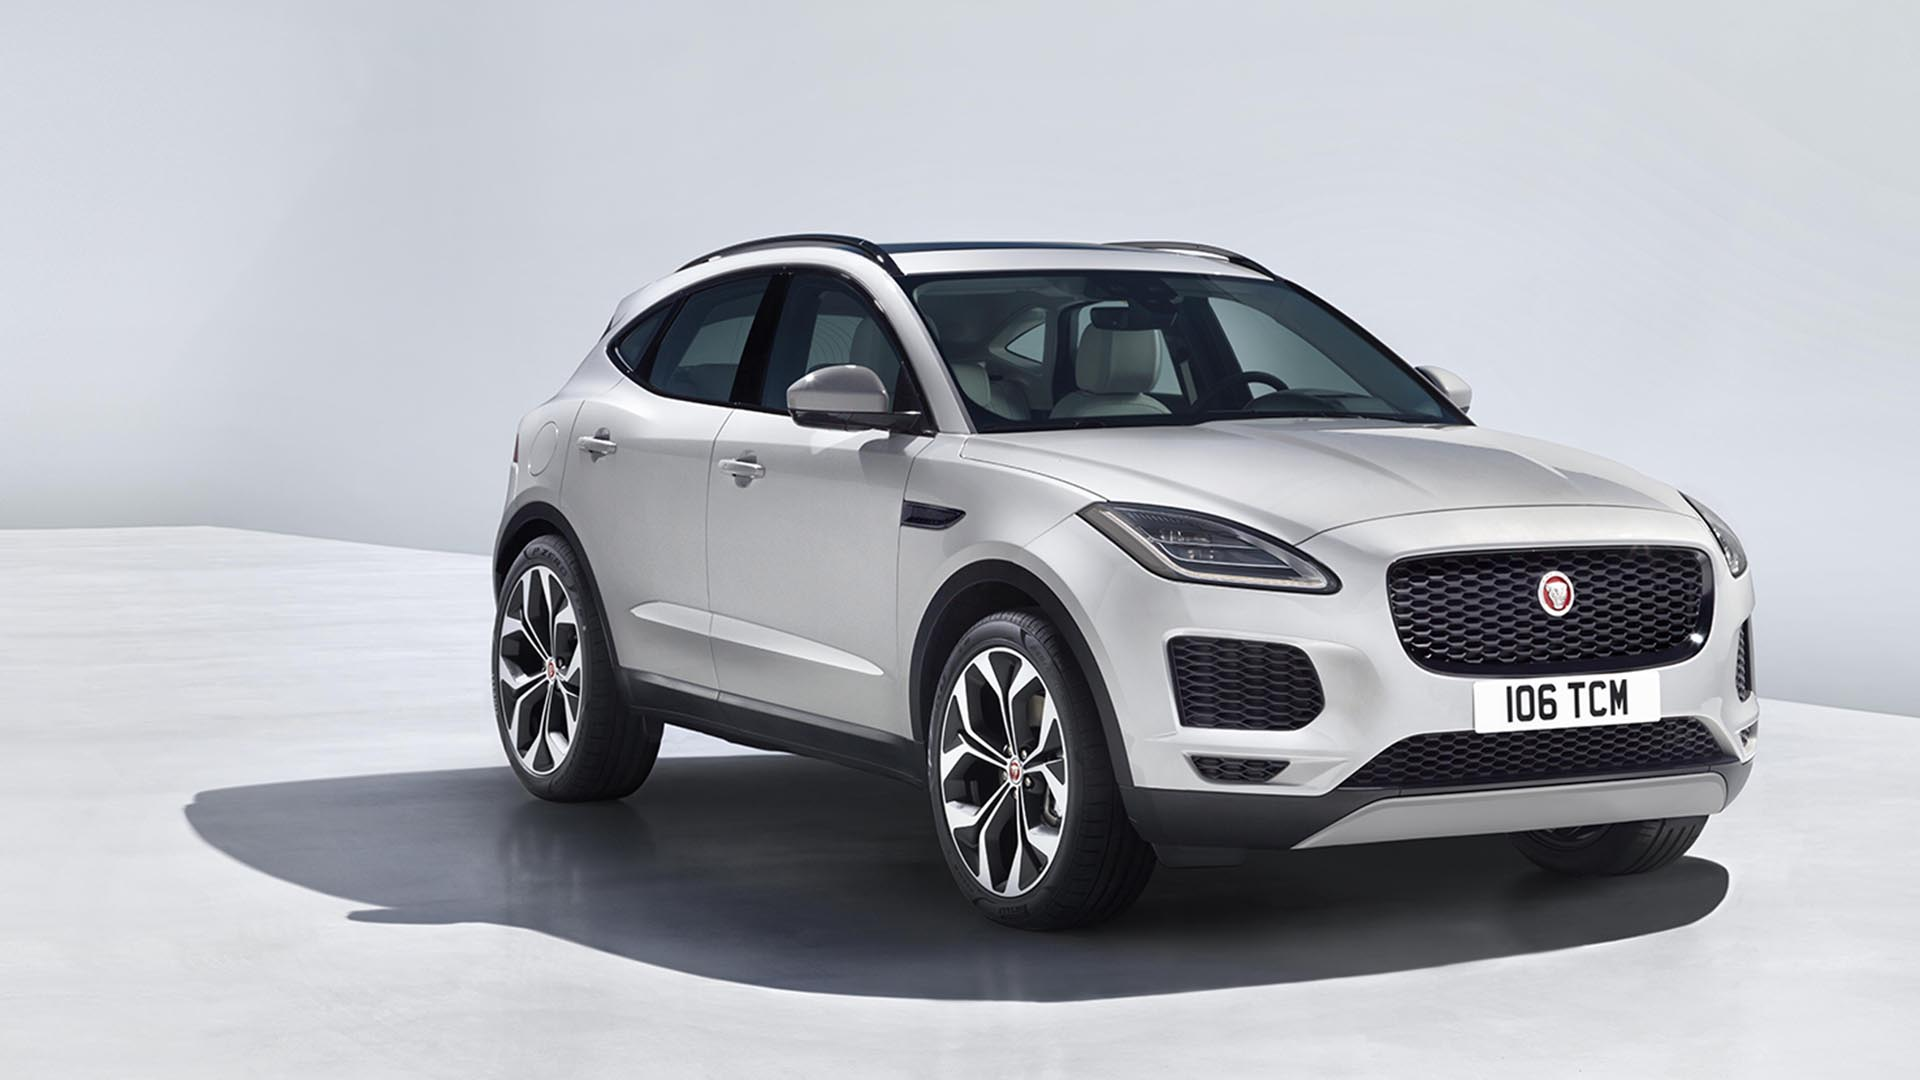 Jaguar reveals E-PACE crossover by making it do a barrel roll